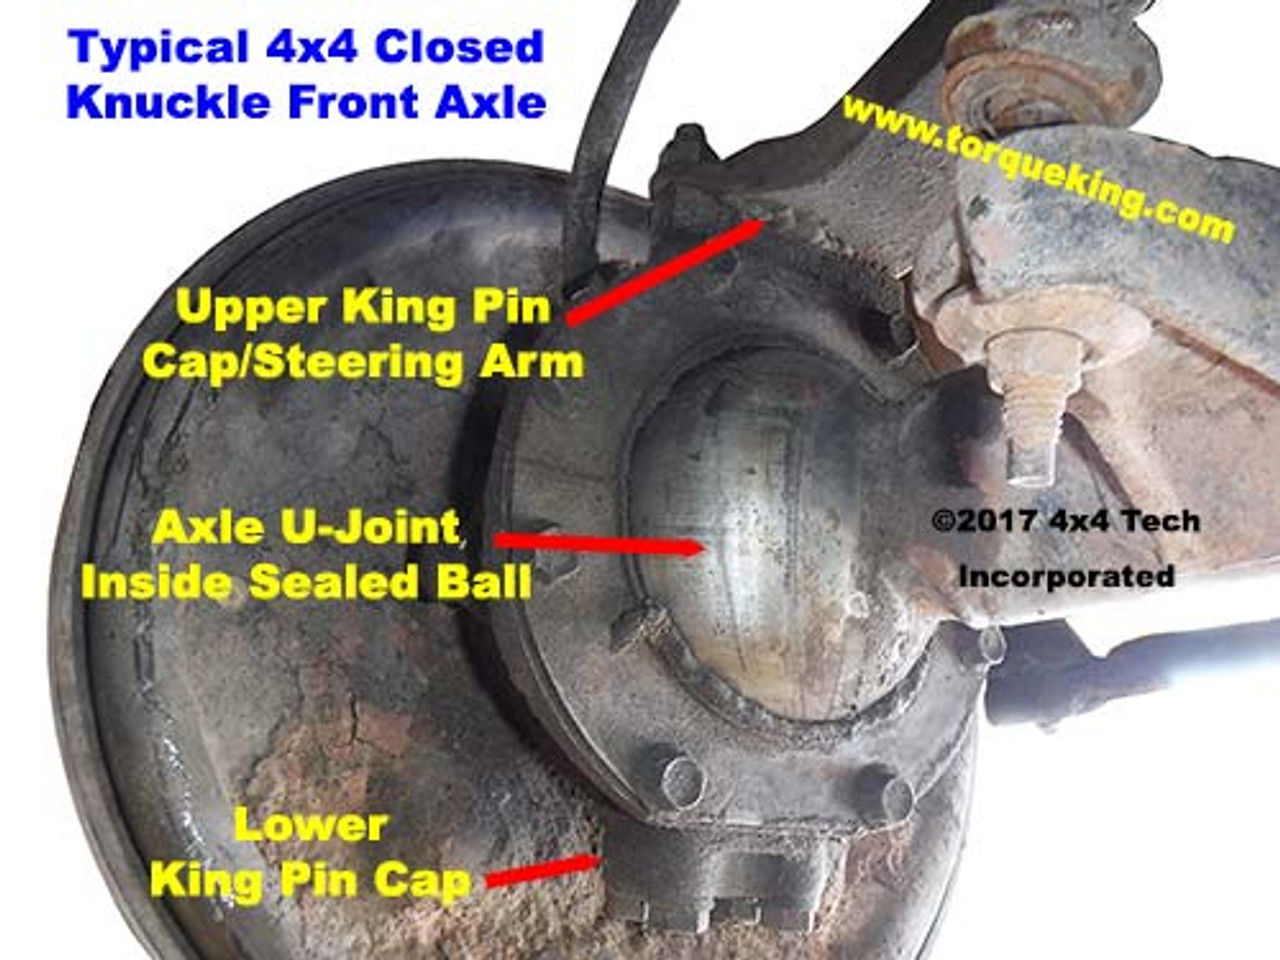 Closed Knuckle Front Axle Detail